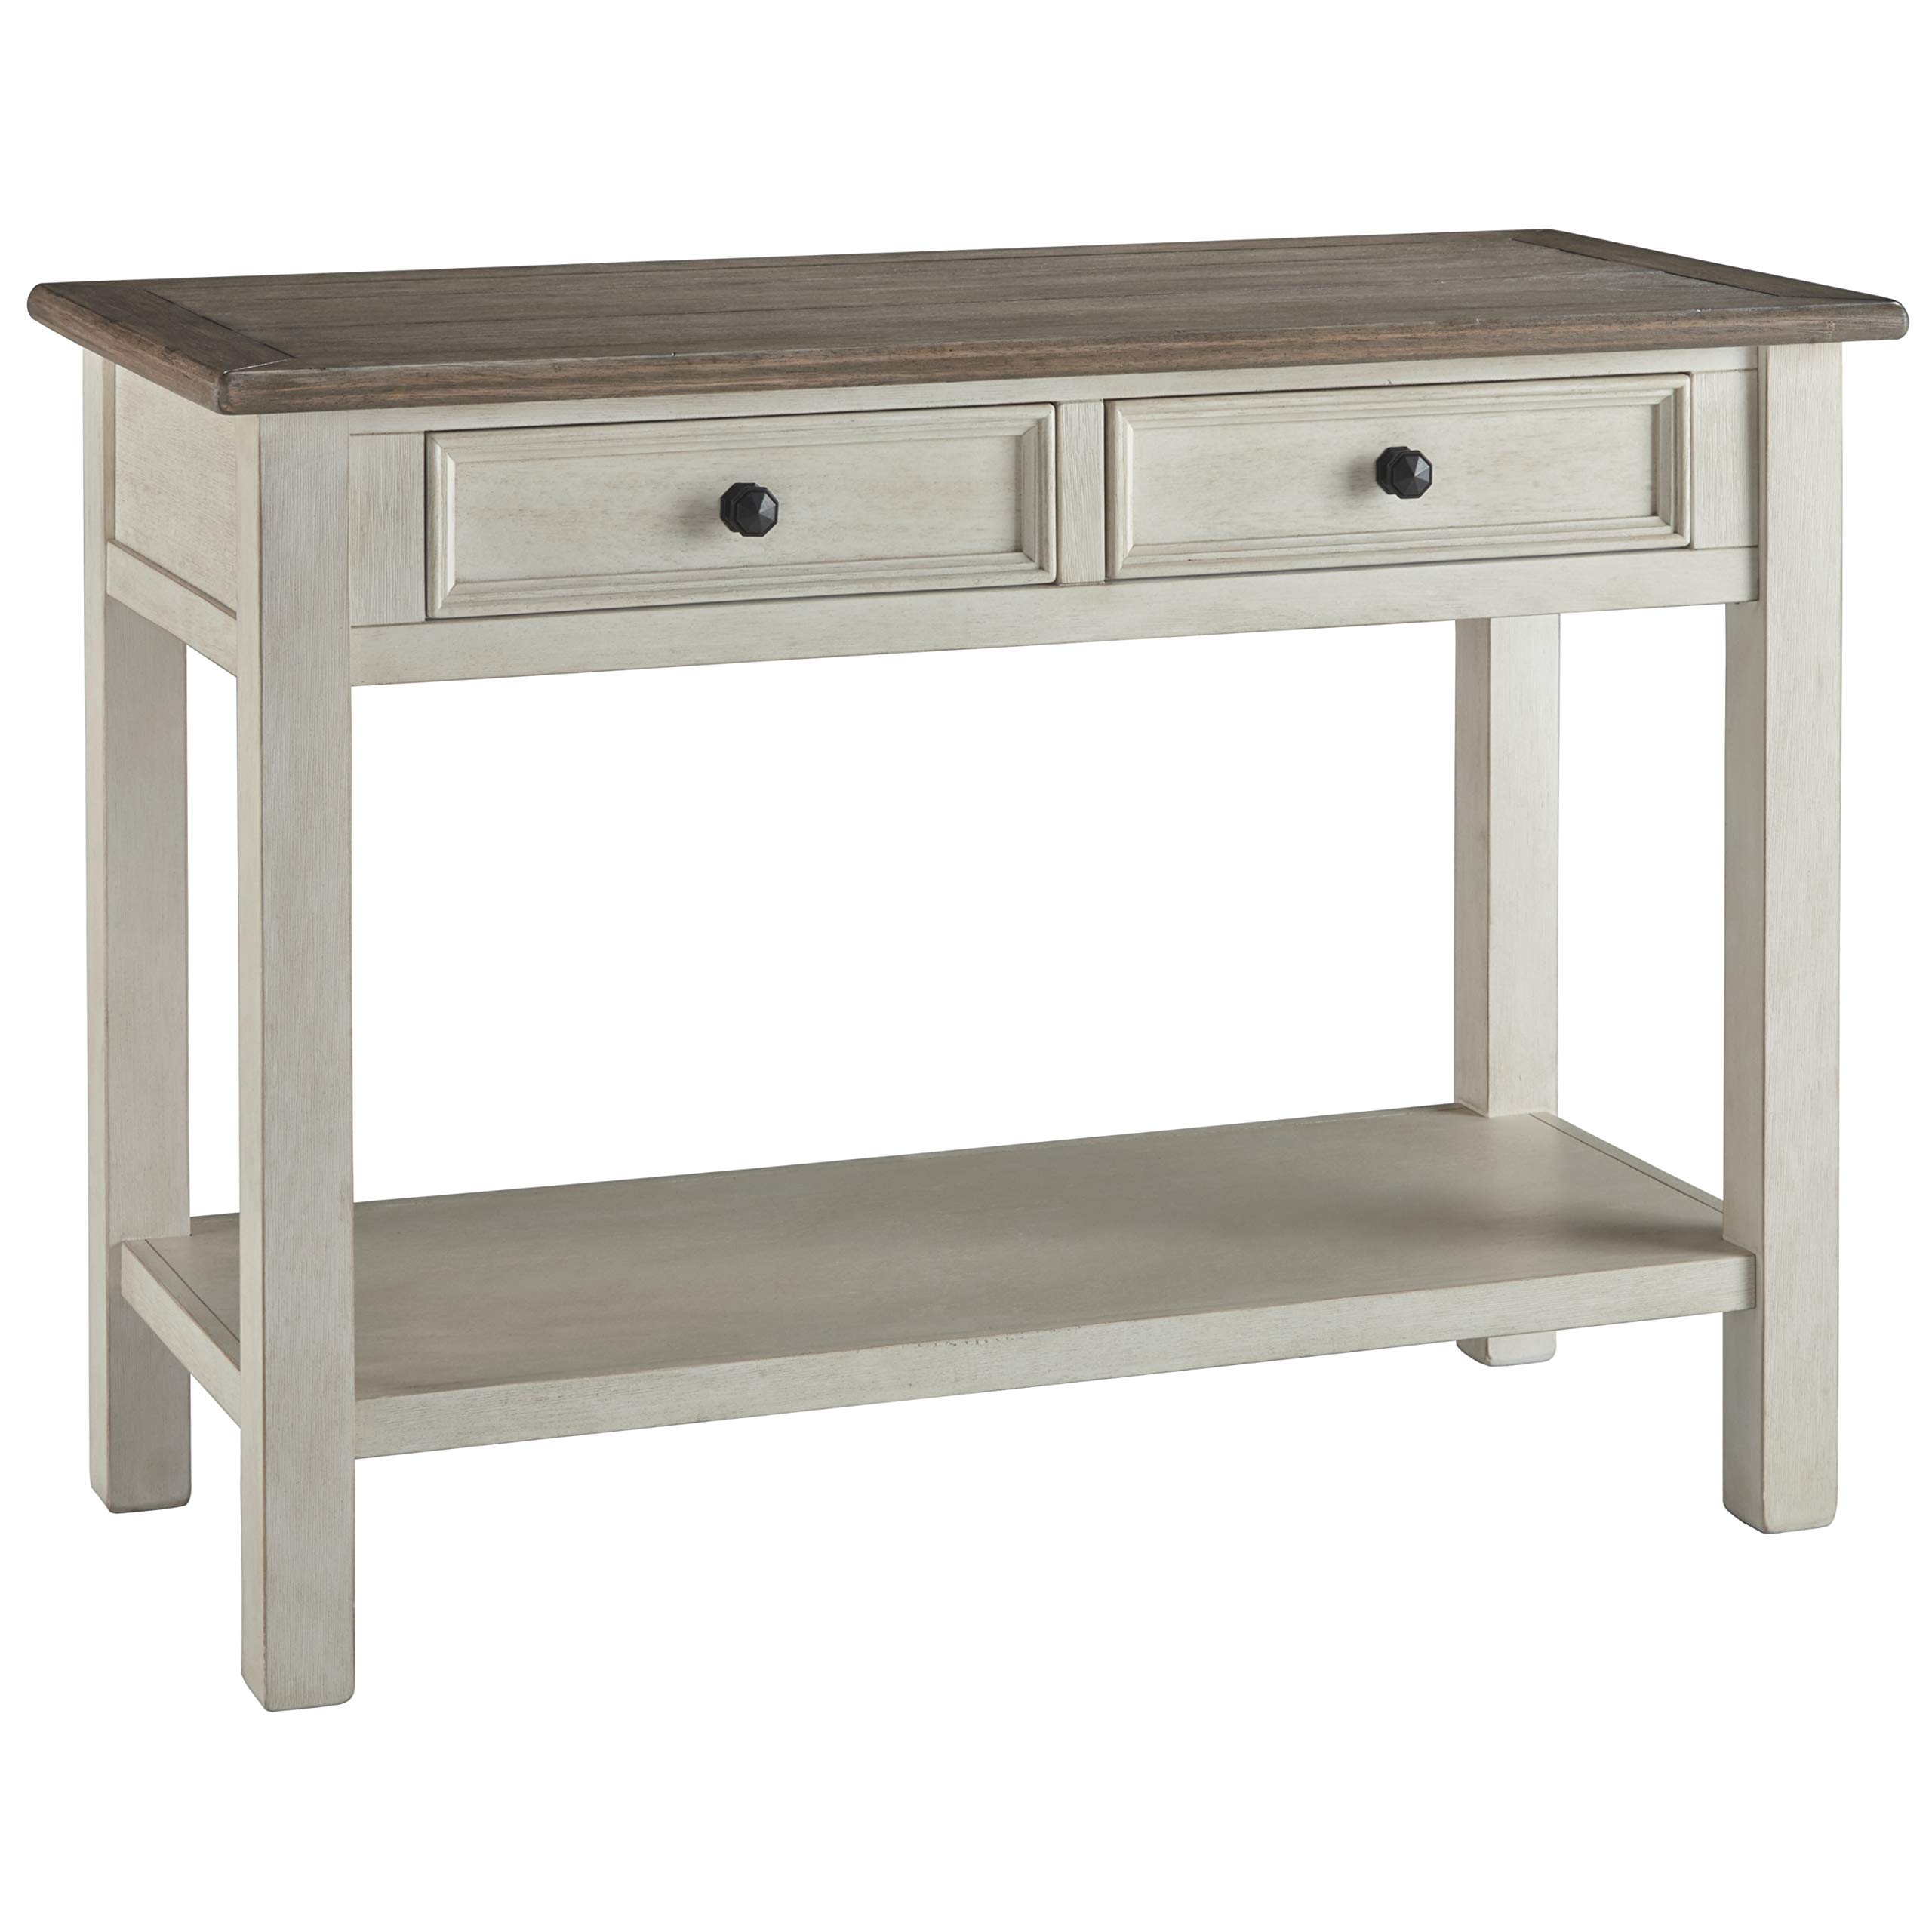 Ashley Furniture Signature Design - Bolanburg Sofaside Table Two-Tone by Signature Design by Ashley